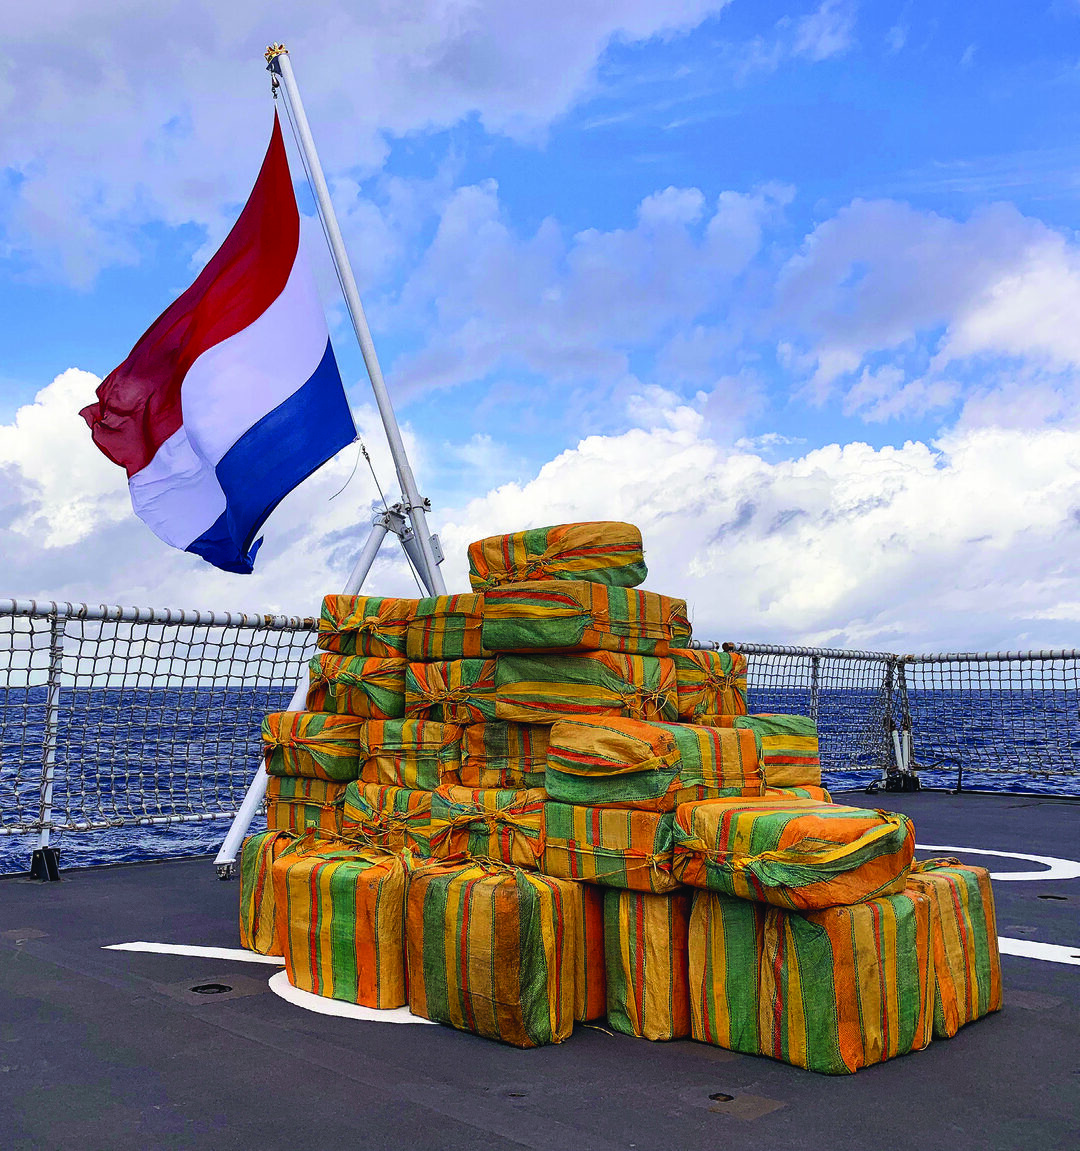 Contraband seized by HNLMS Groningen and an embarked U.S. Coast Guard LEDET during CTG 4.4 operations in the Caribbean. (Royal Netherland Navy photo)